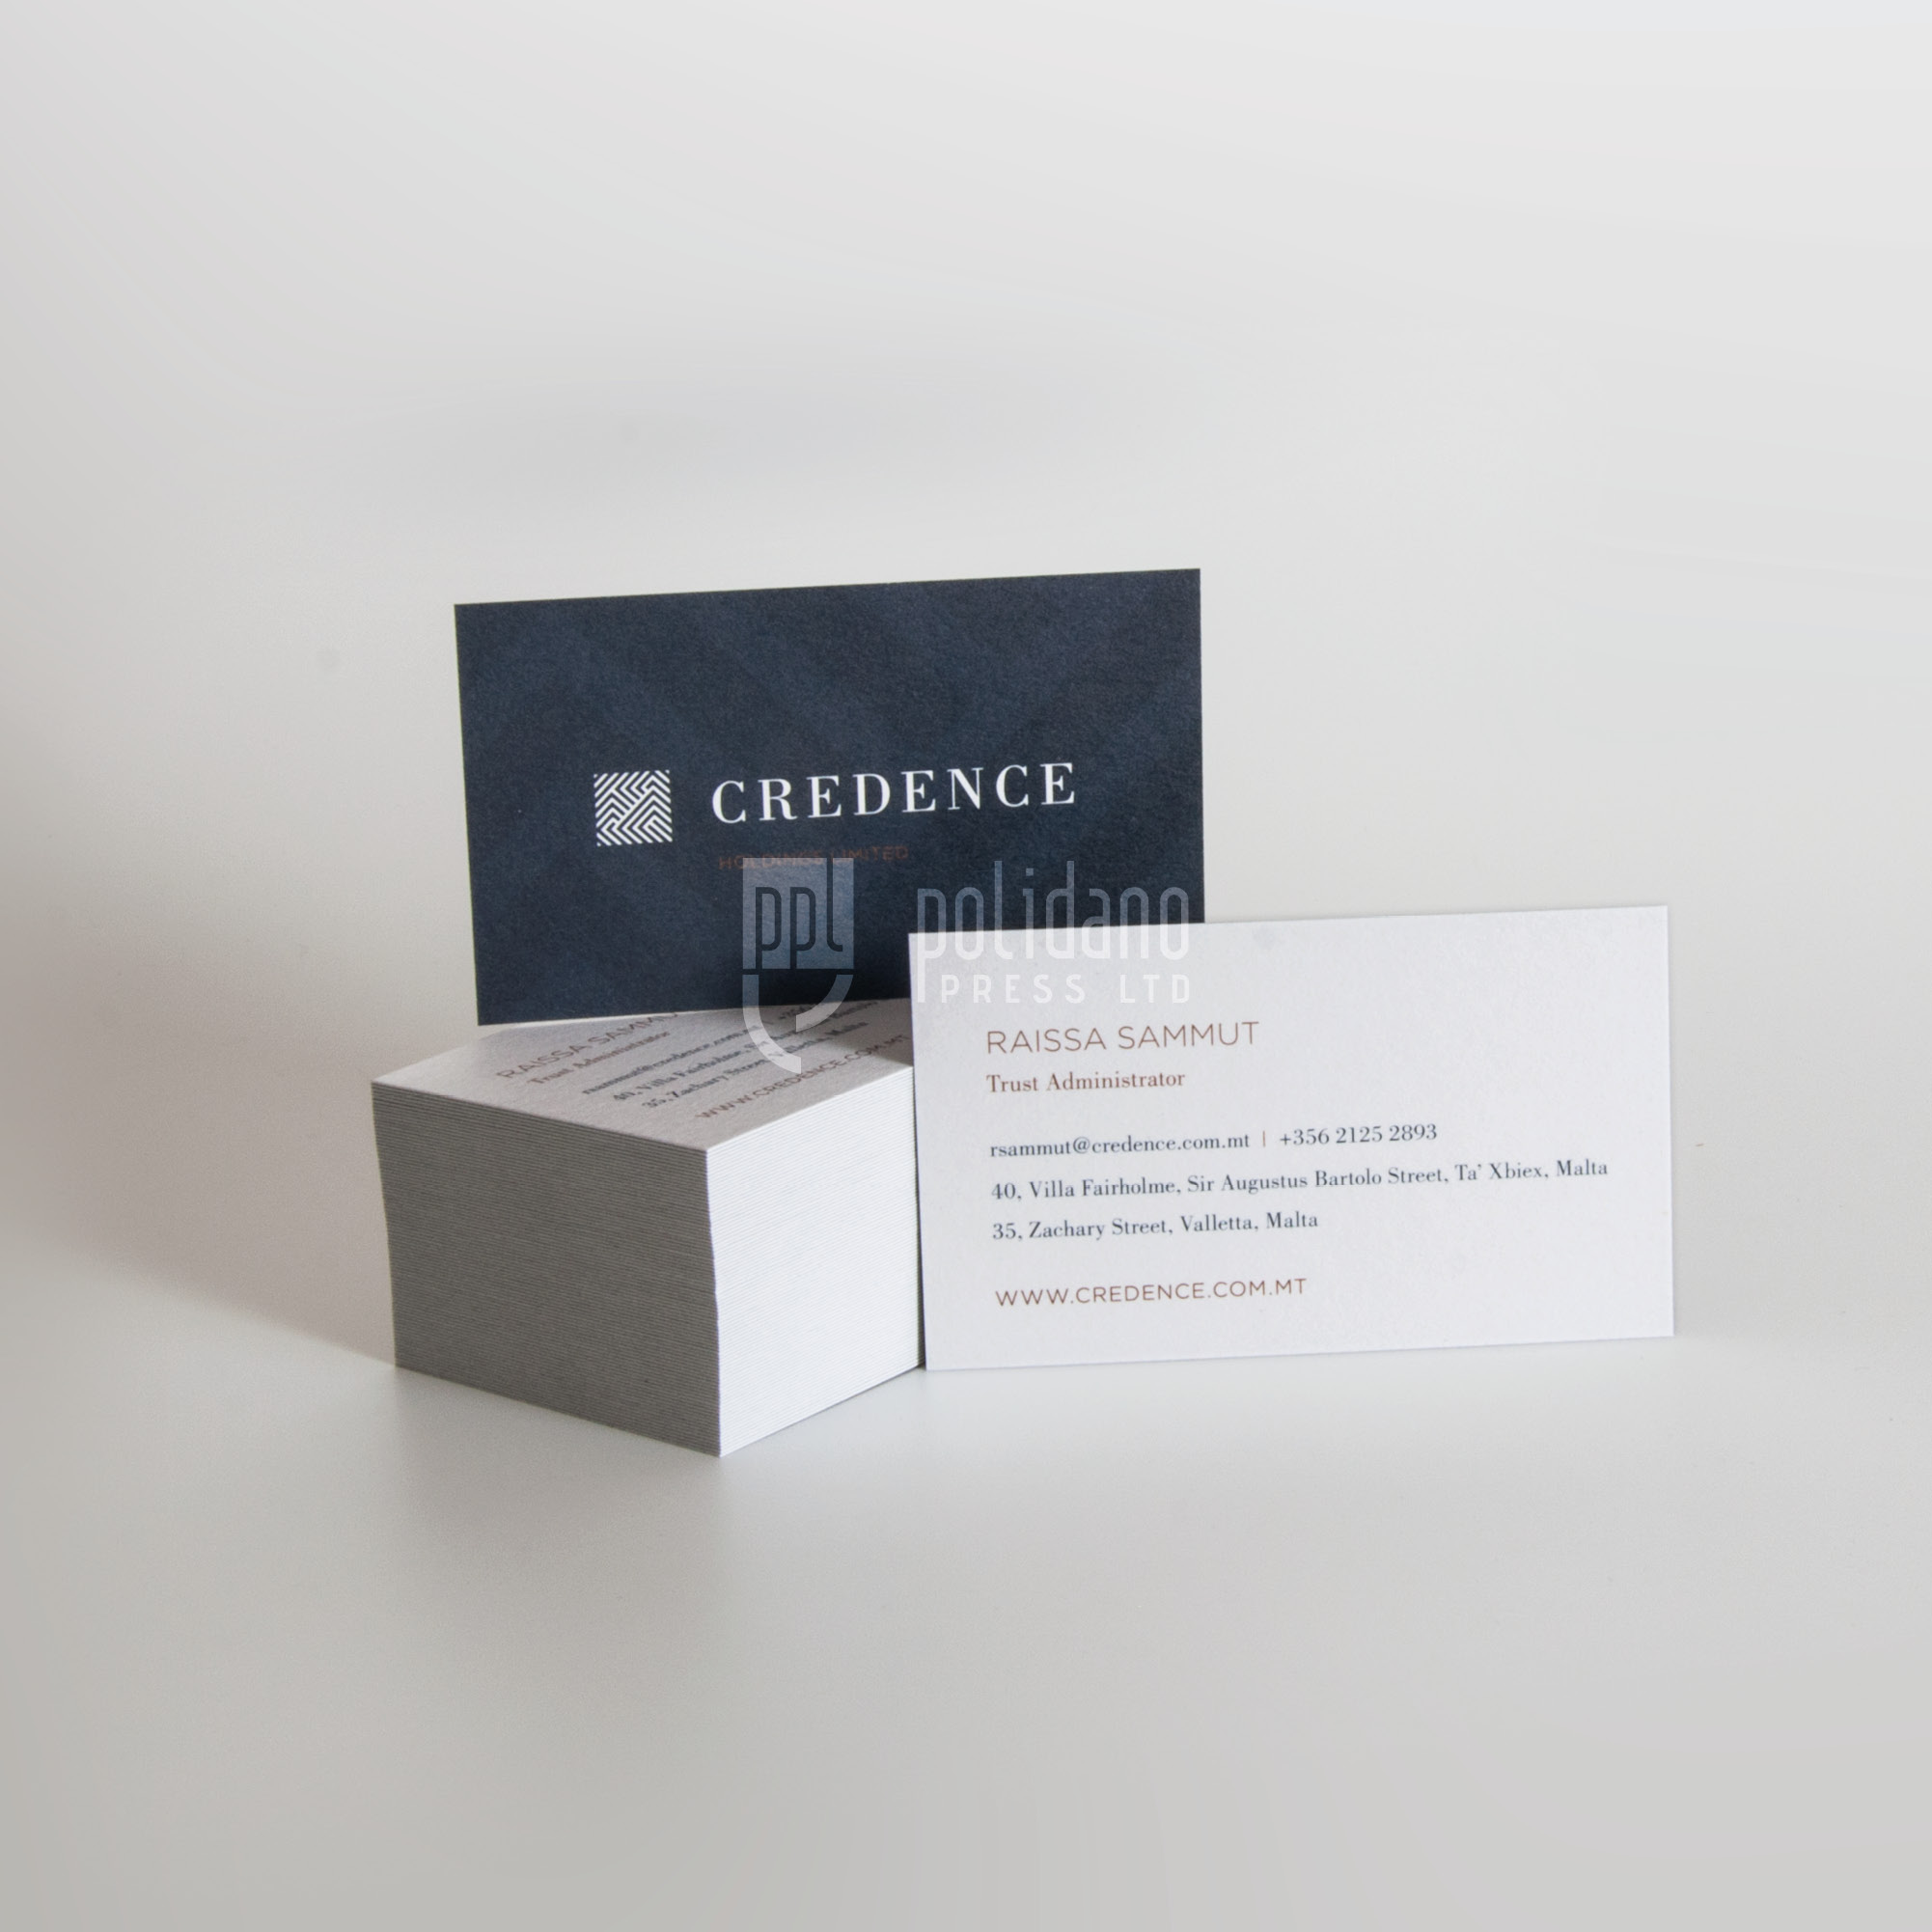 Credence business cards